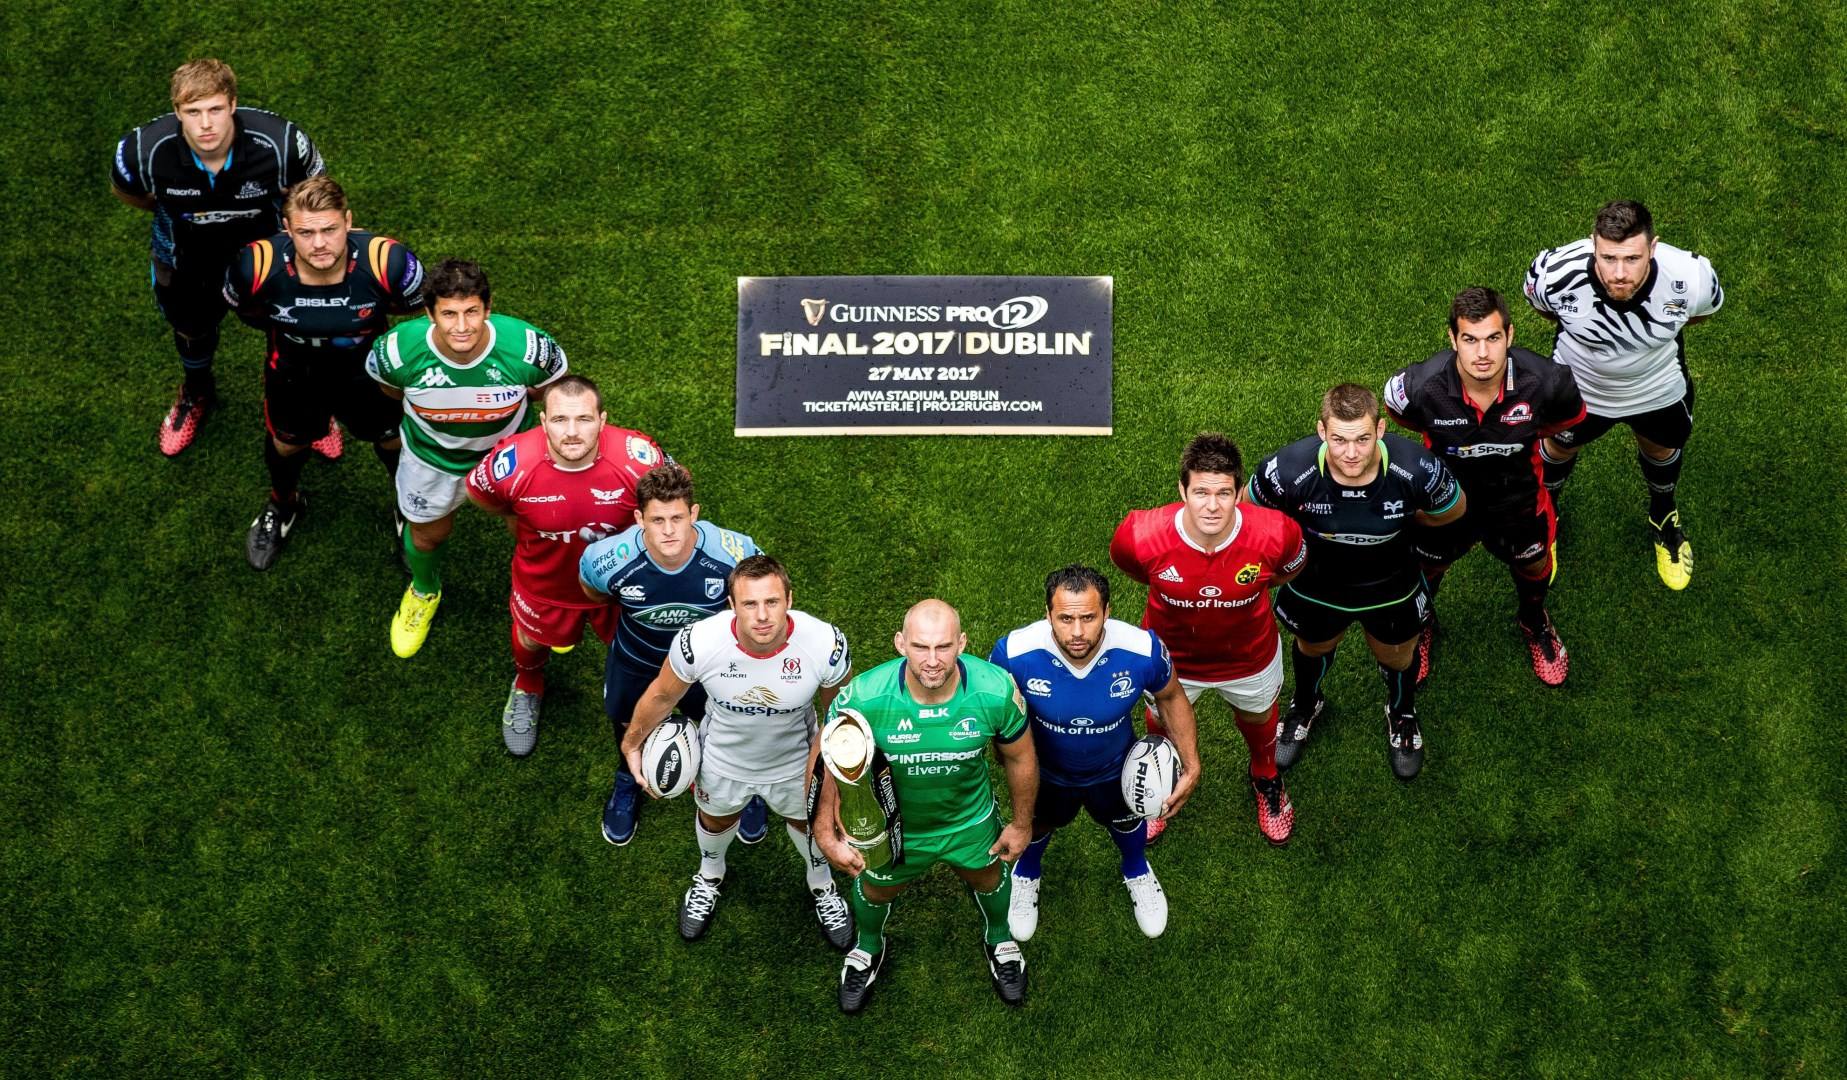 Guinness PRO12 launches in crucial Lions season